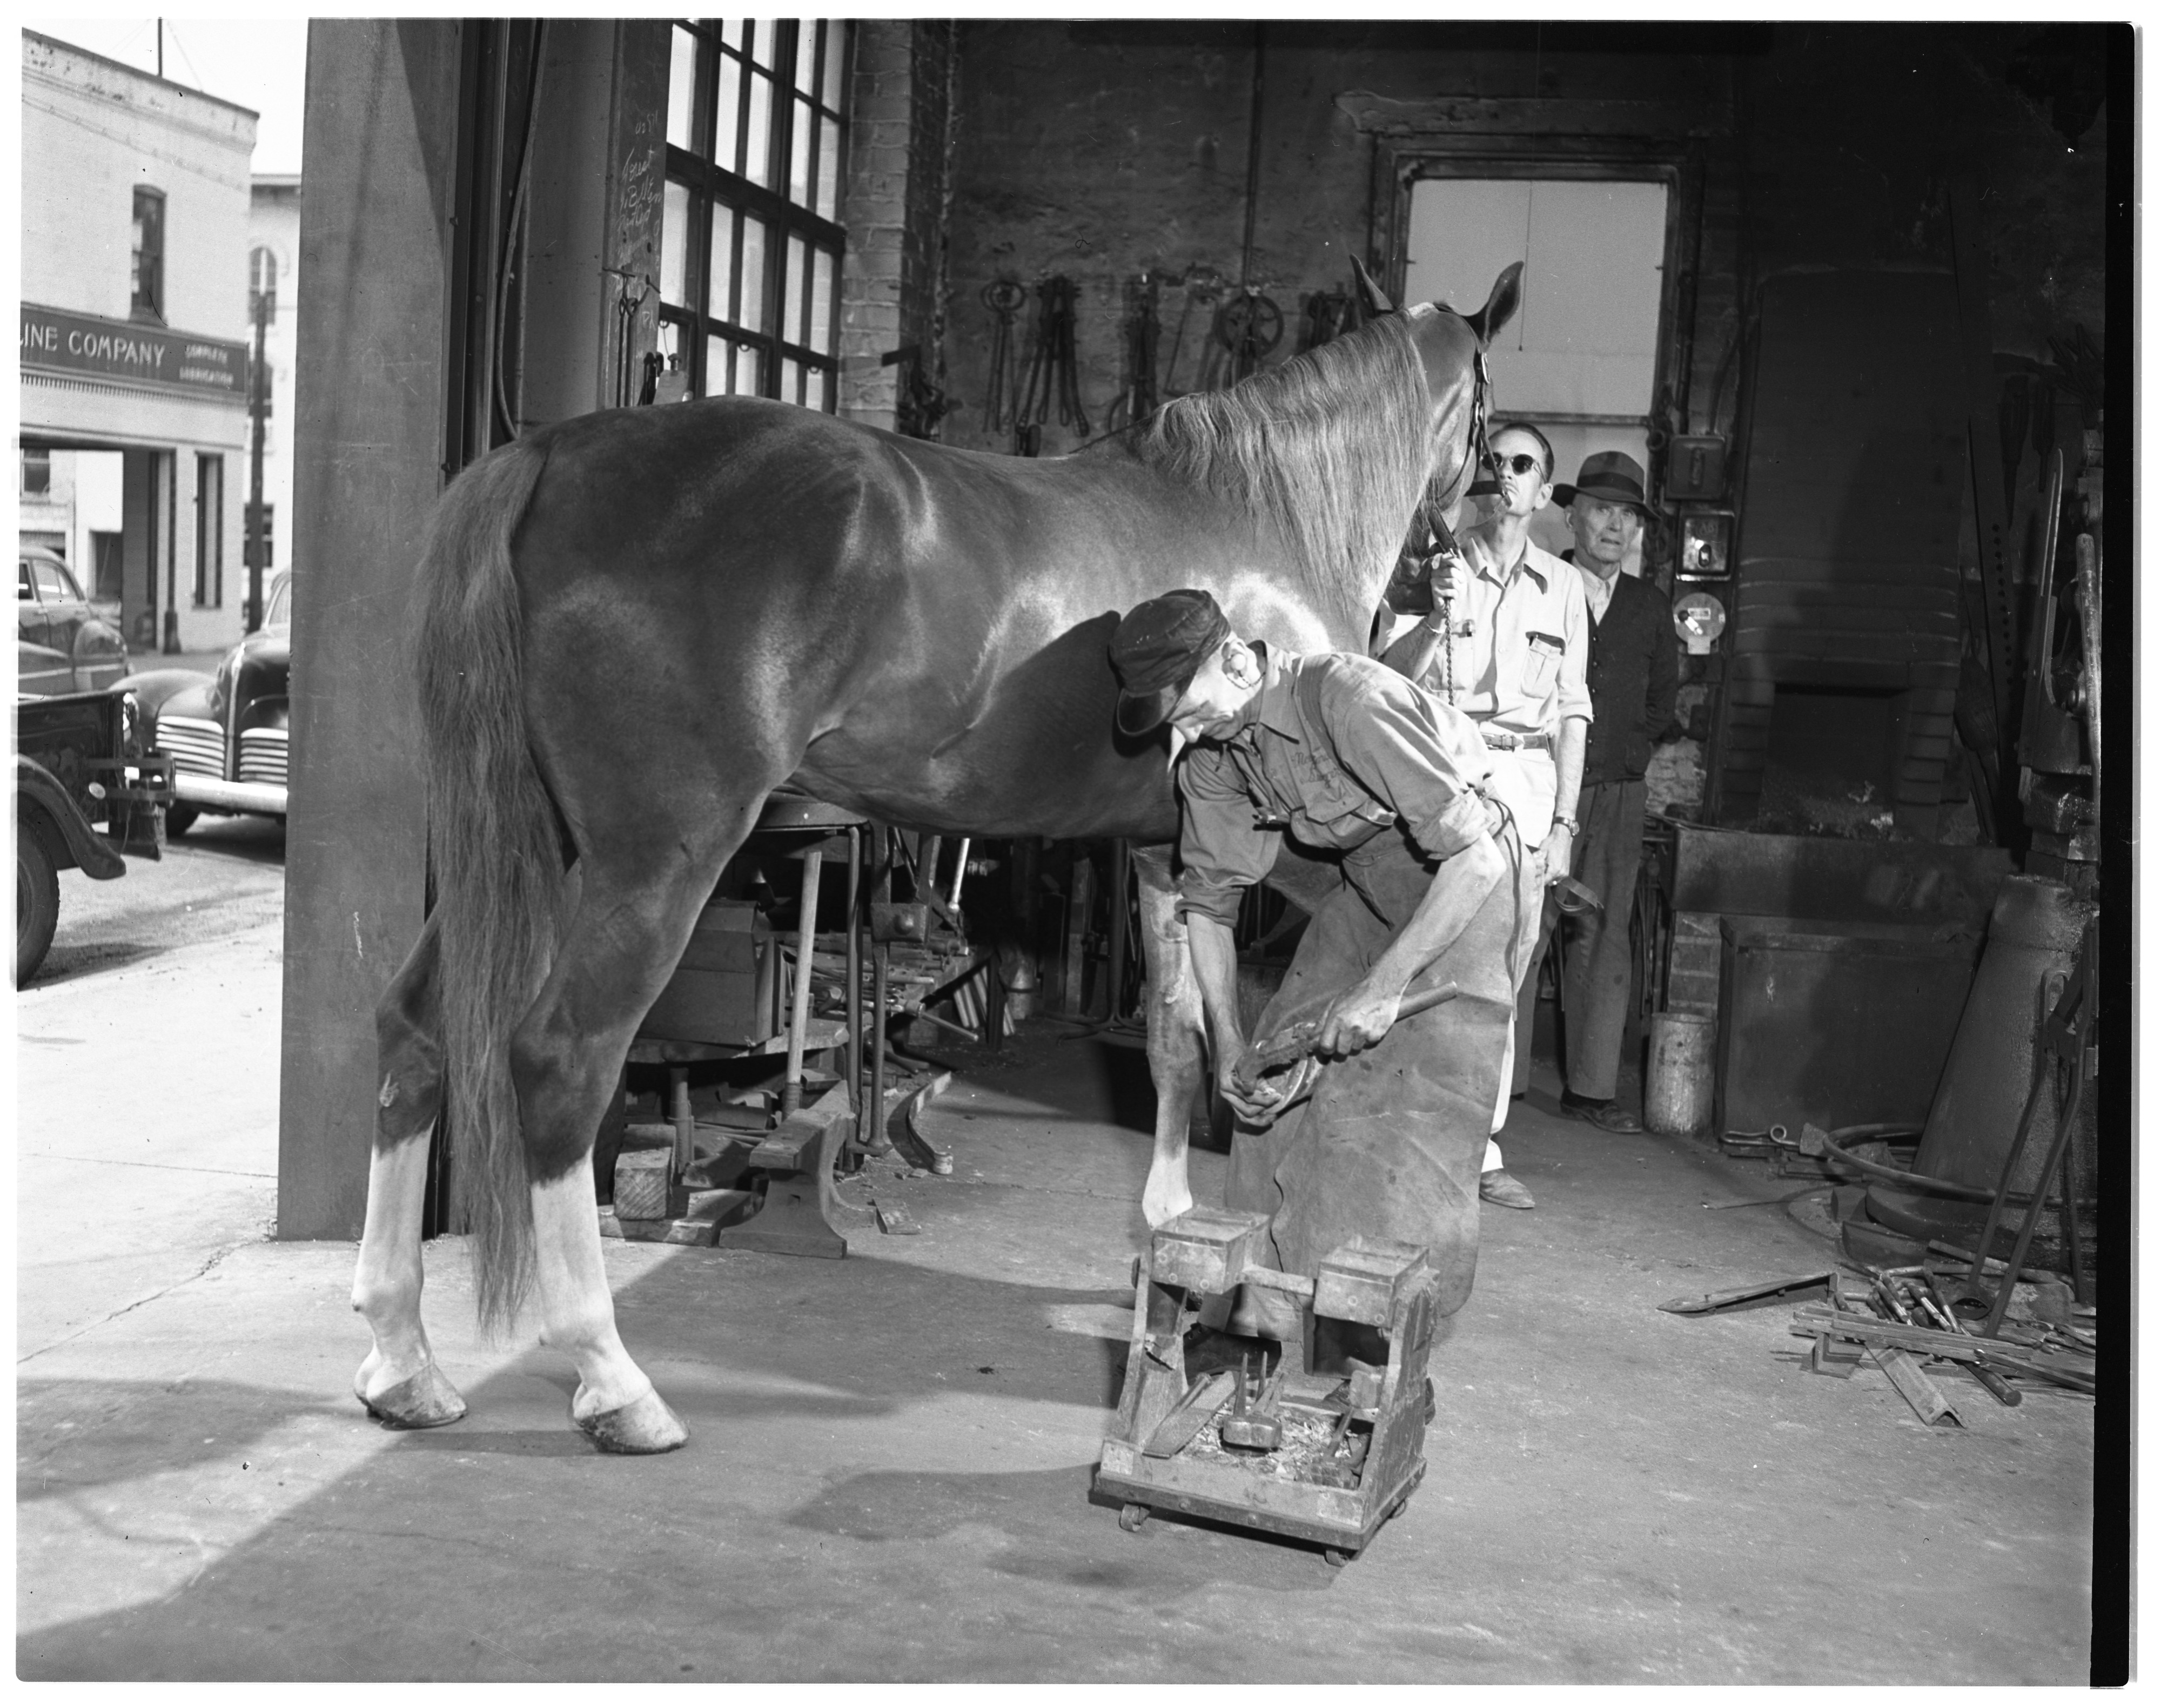 Fred Seeger, Blacksmith, Shoeing A Horse, May 1949 image